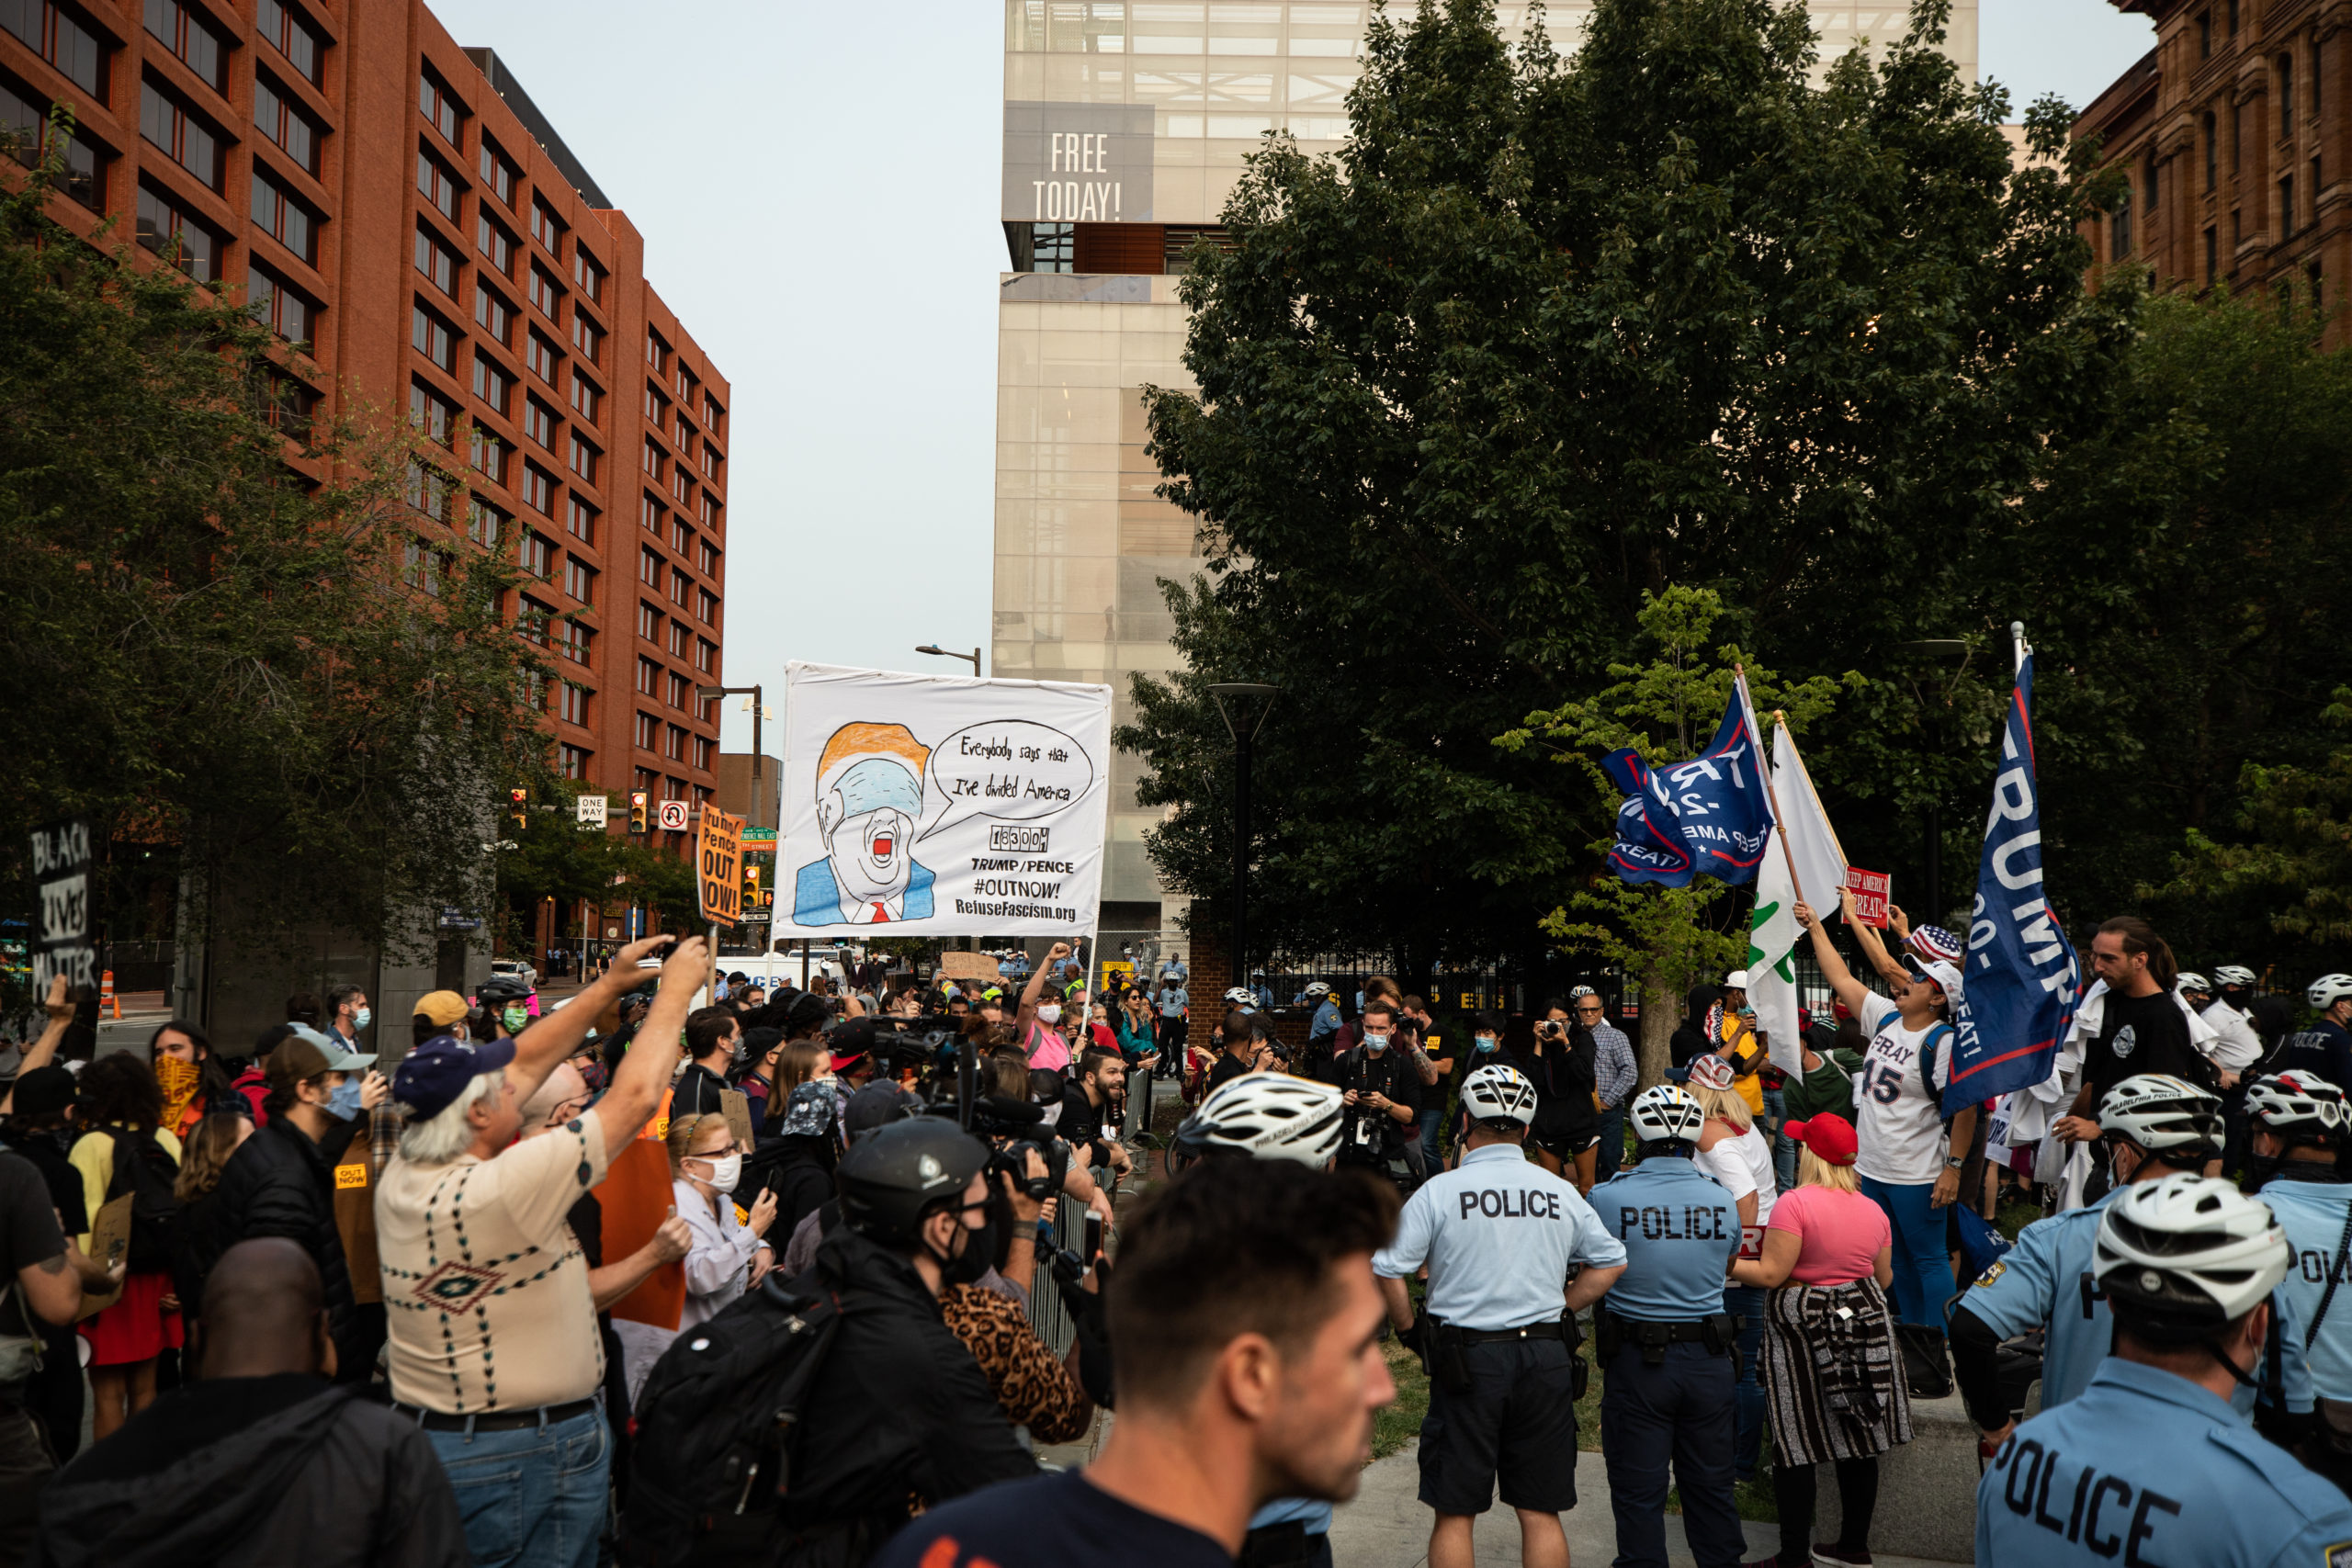 Protesters confront Trump supporters in Philadelphia, Pennsylvania on Sept. 15, 2020. (Photo: Kaylee Greenlee / DCNF)